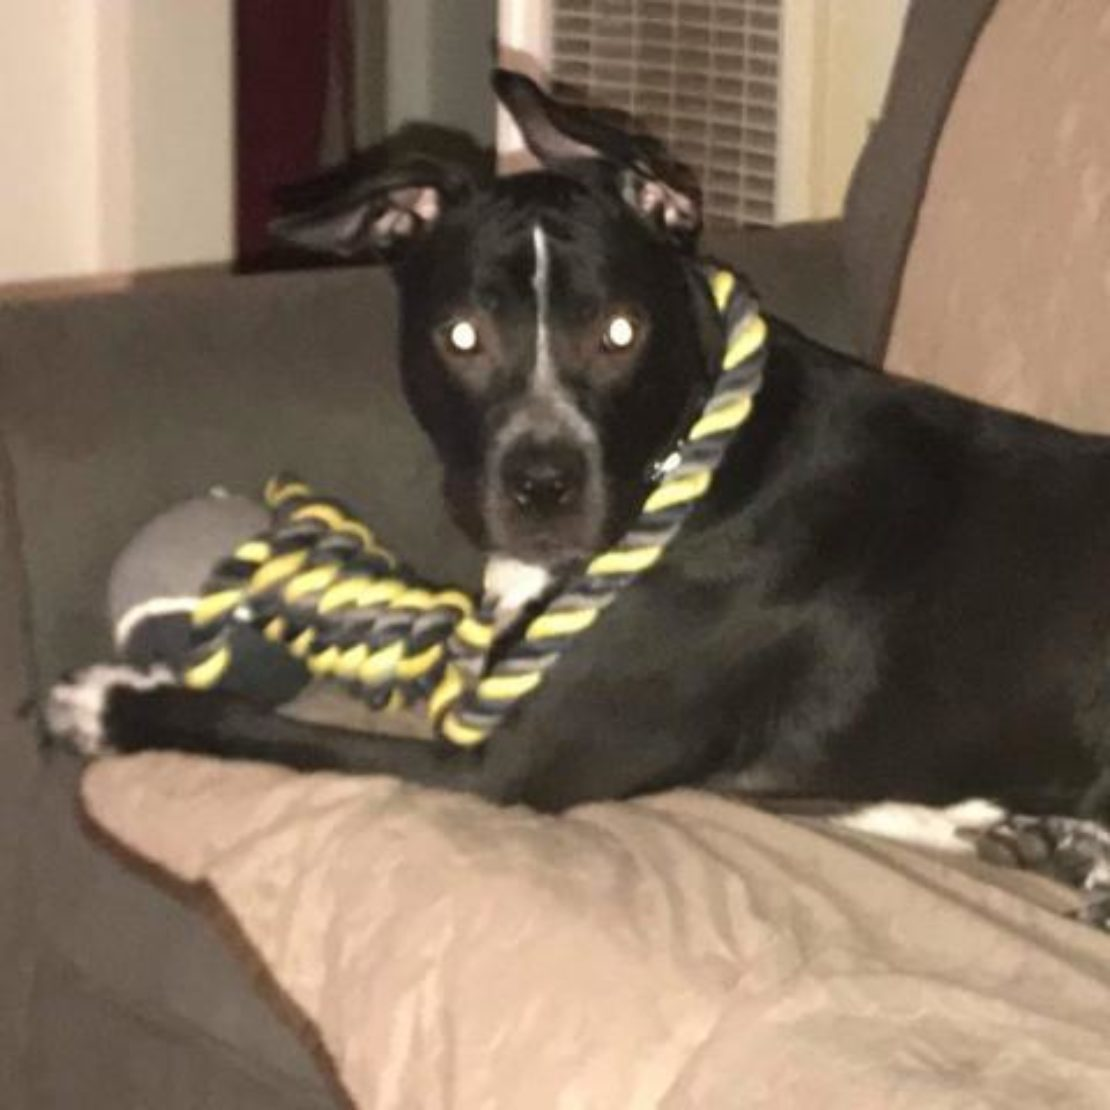 Black dog with floppy ears and a yellow-and-black rope toy across her shoulders stares intently at camera.